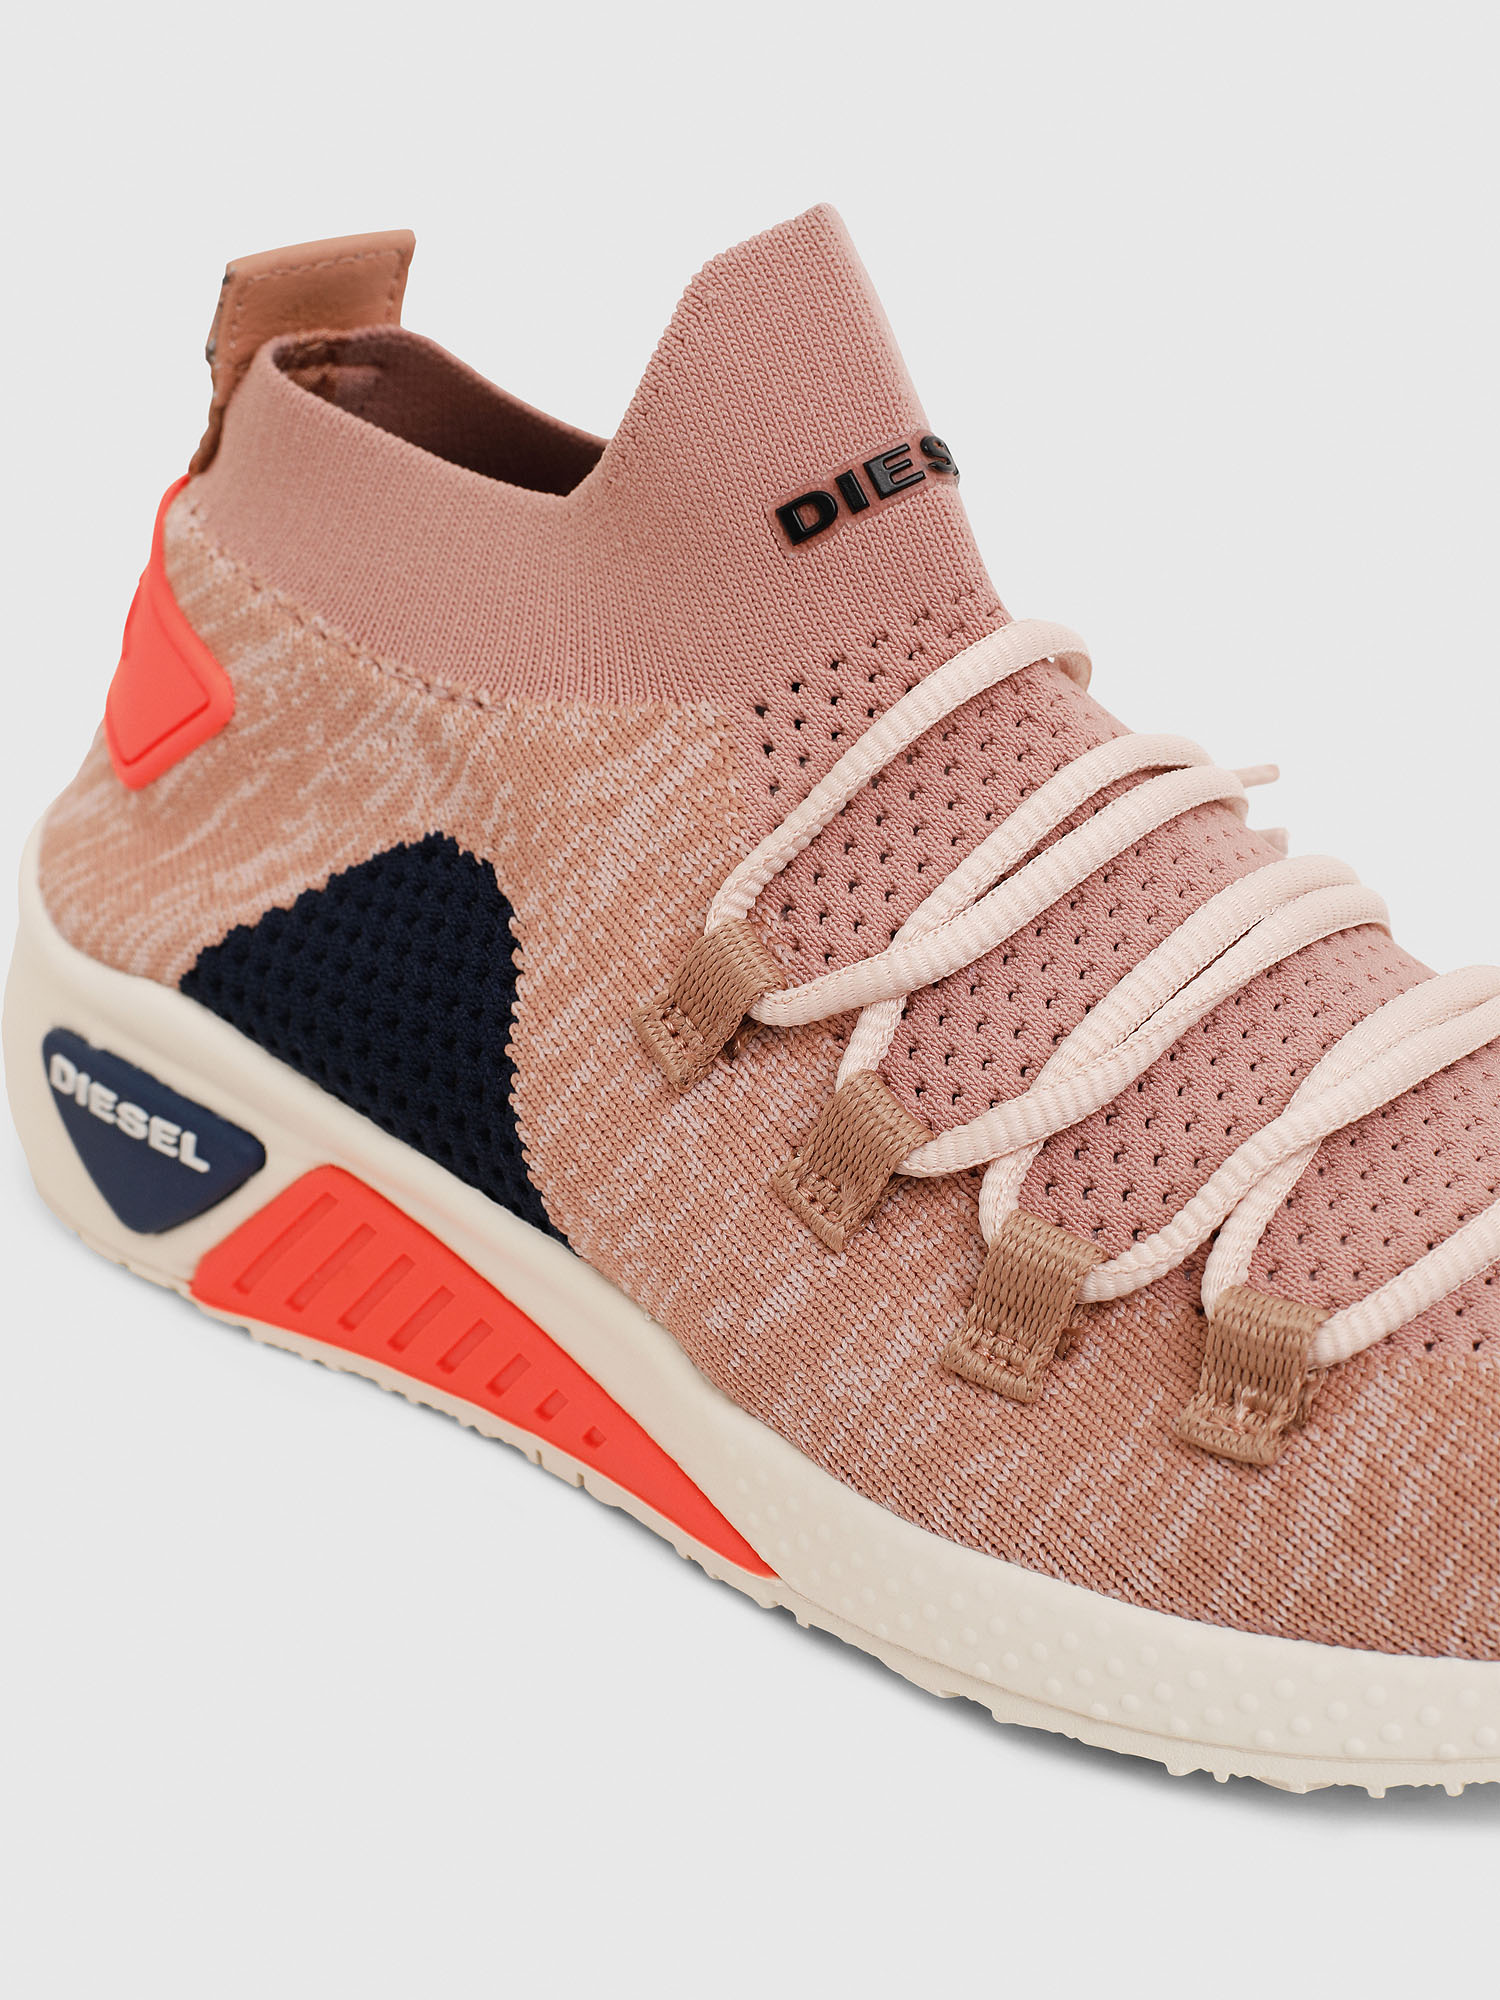 Diesel - S-KB ATHL LACE W,  - Sneakers - Image 4